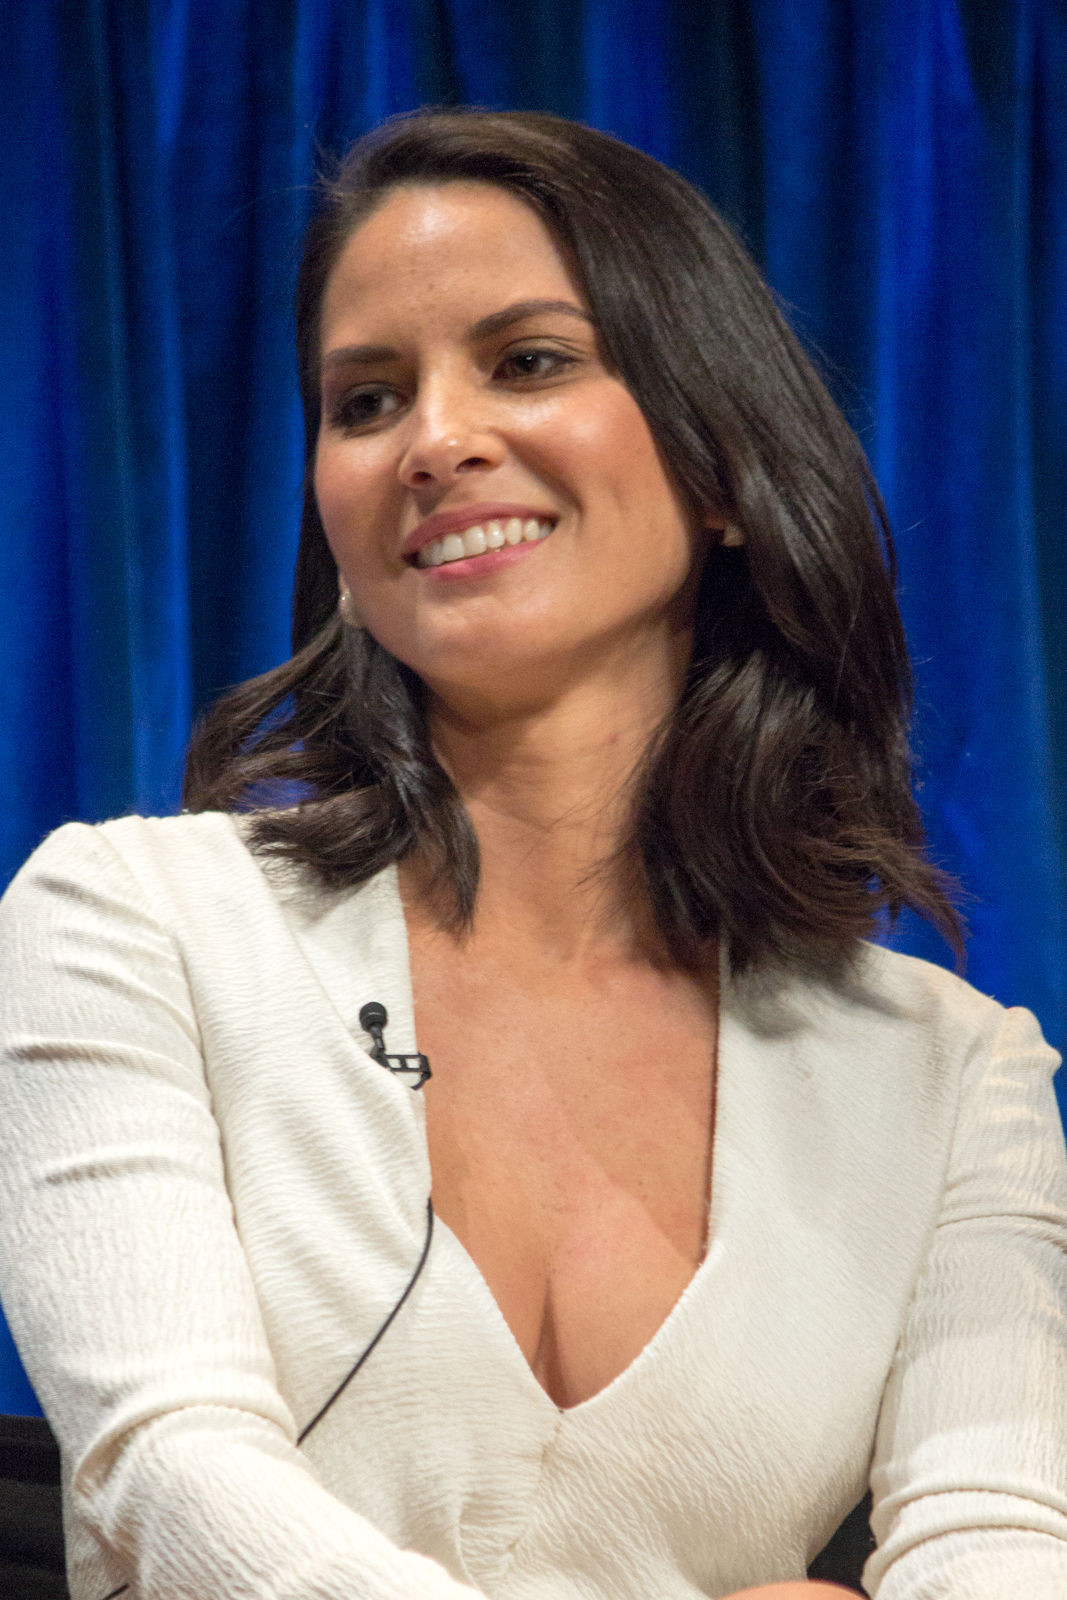 Photo of Olivia Munn: American actress, comedian, model, television personality and author